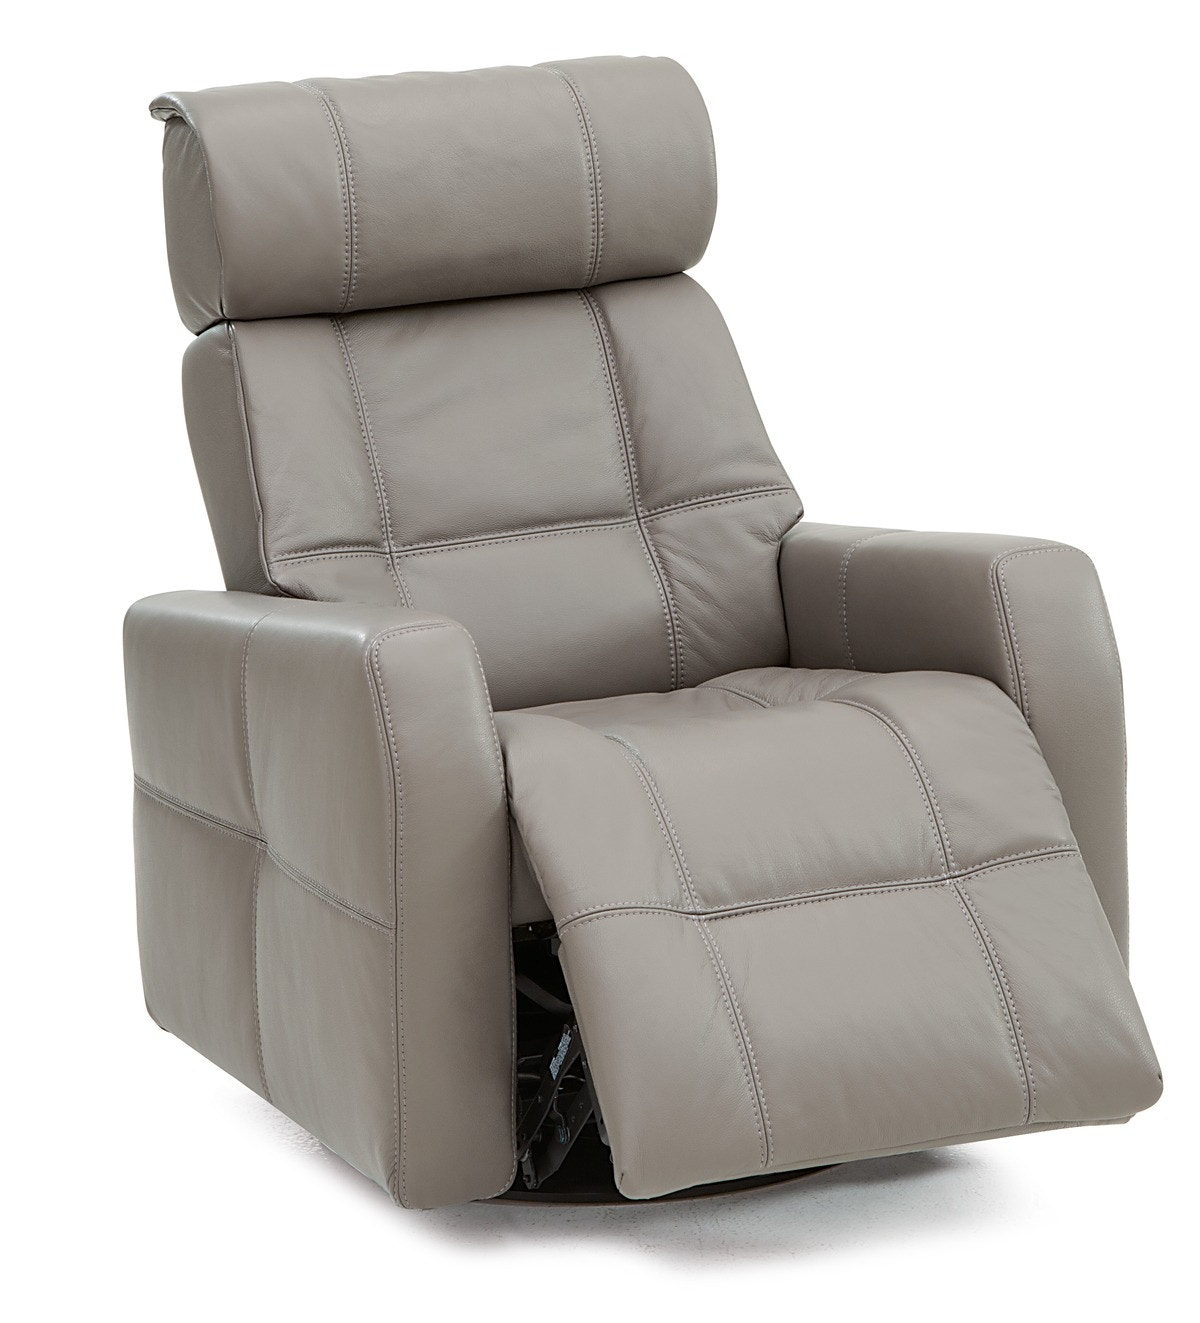 Palliser Furniture Swivel Glider Recliner Power 43215 38